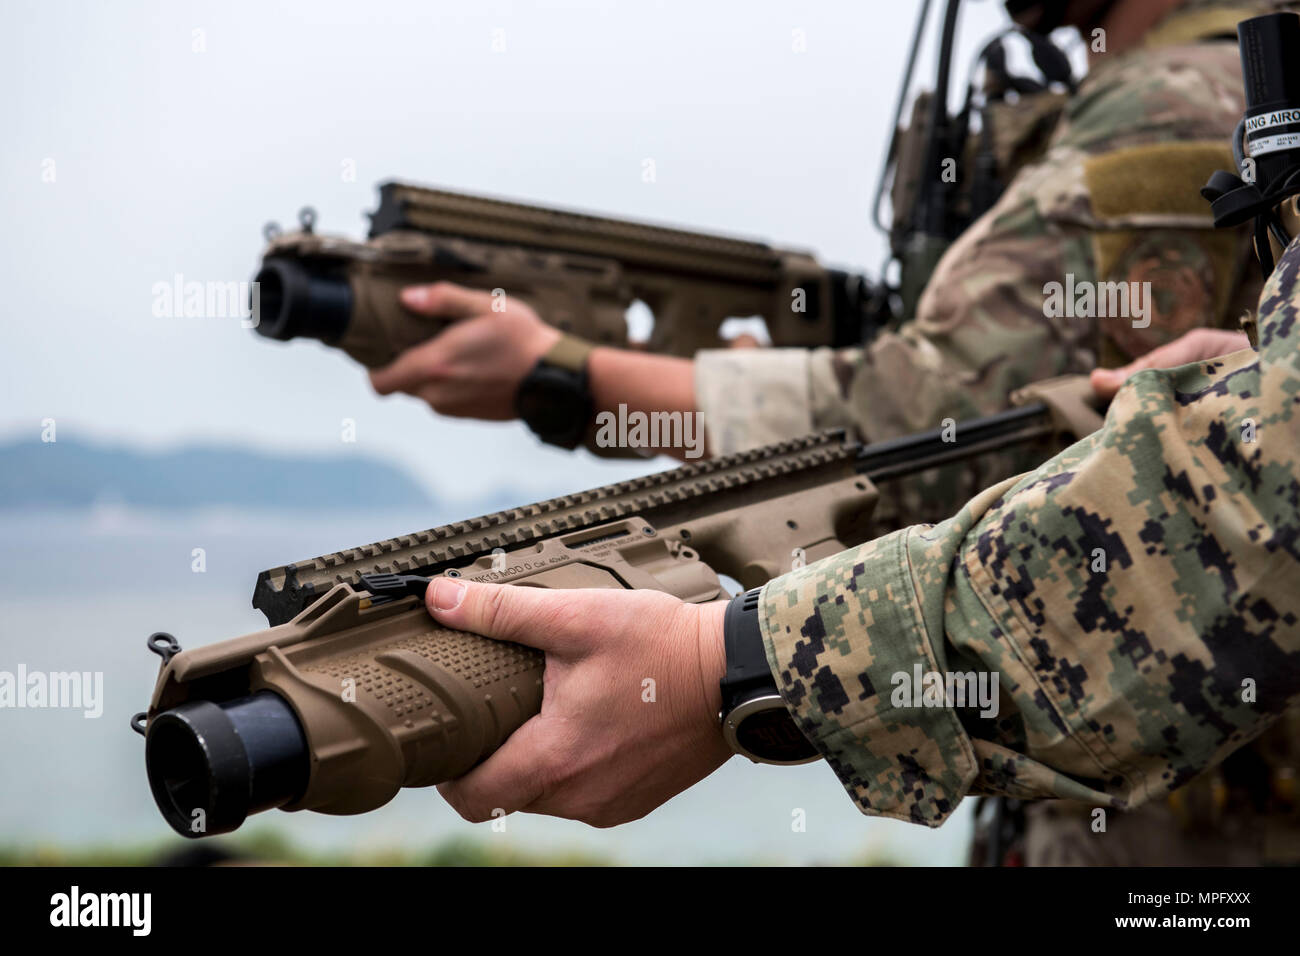 A U.S. Air Force combat controller from the 320th Special Tactics Squadron, and a Marine joint terminal attack controller from the 5th Air Naval Gunfire Liaison Company, III Marine Expeditionary Force, wield 40 mm grenade launchers during a training exercise March 10, 2017, at the Irisuna Jima Training Range, Okinawa, Japan. The launchers are used to shoot out smoke grenades as a visual marker for friendly aircraft. (U.S. Air Force photo by Senior Airman John Linzmeier) - Stock Image